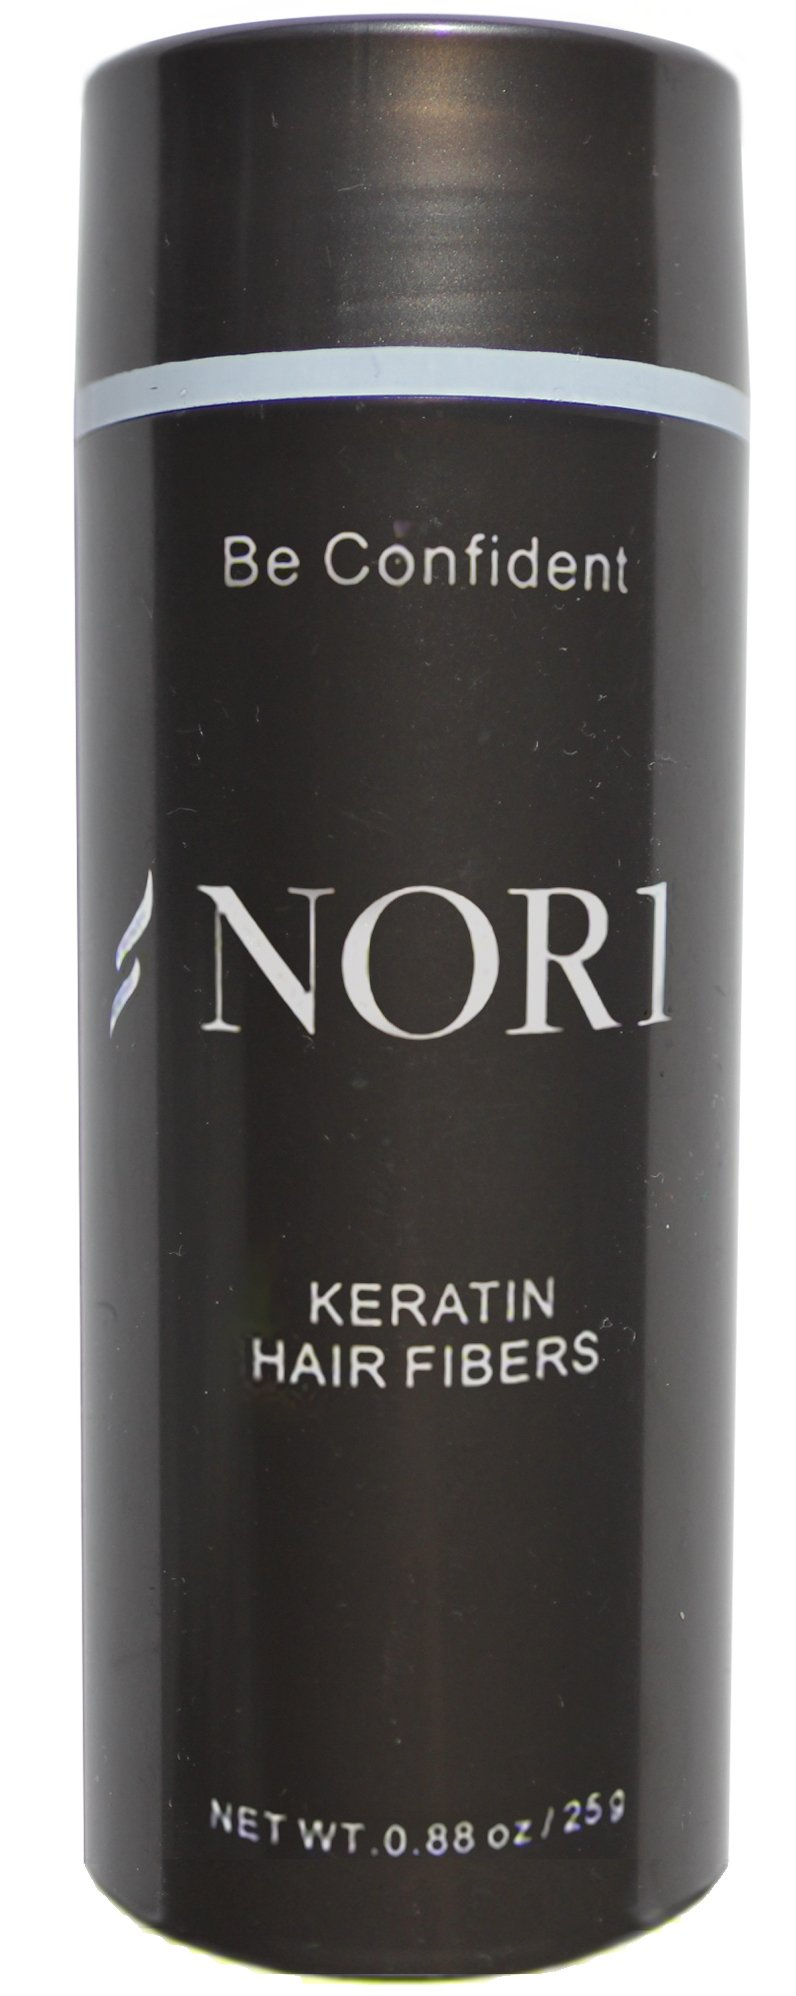 Nor1 Keratin Hair Building Fibers: Hair Fiber Filler & Thickener for Men & Women - Cover Up & Concealer for Thinning Areas or Minor Bald Spot - Thicker, Fuller Hair in Seconds - 25g, Dark Brown